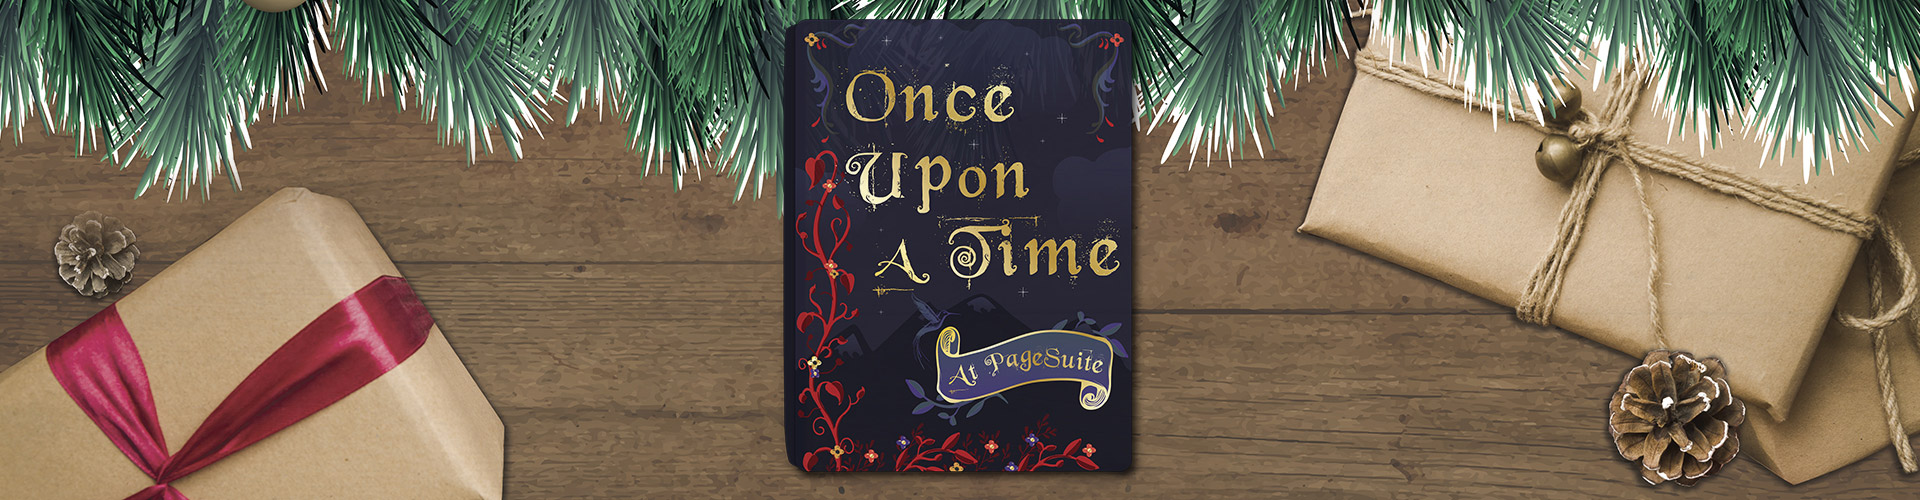 Once Upon a Time at PageSuite – Christmas Video